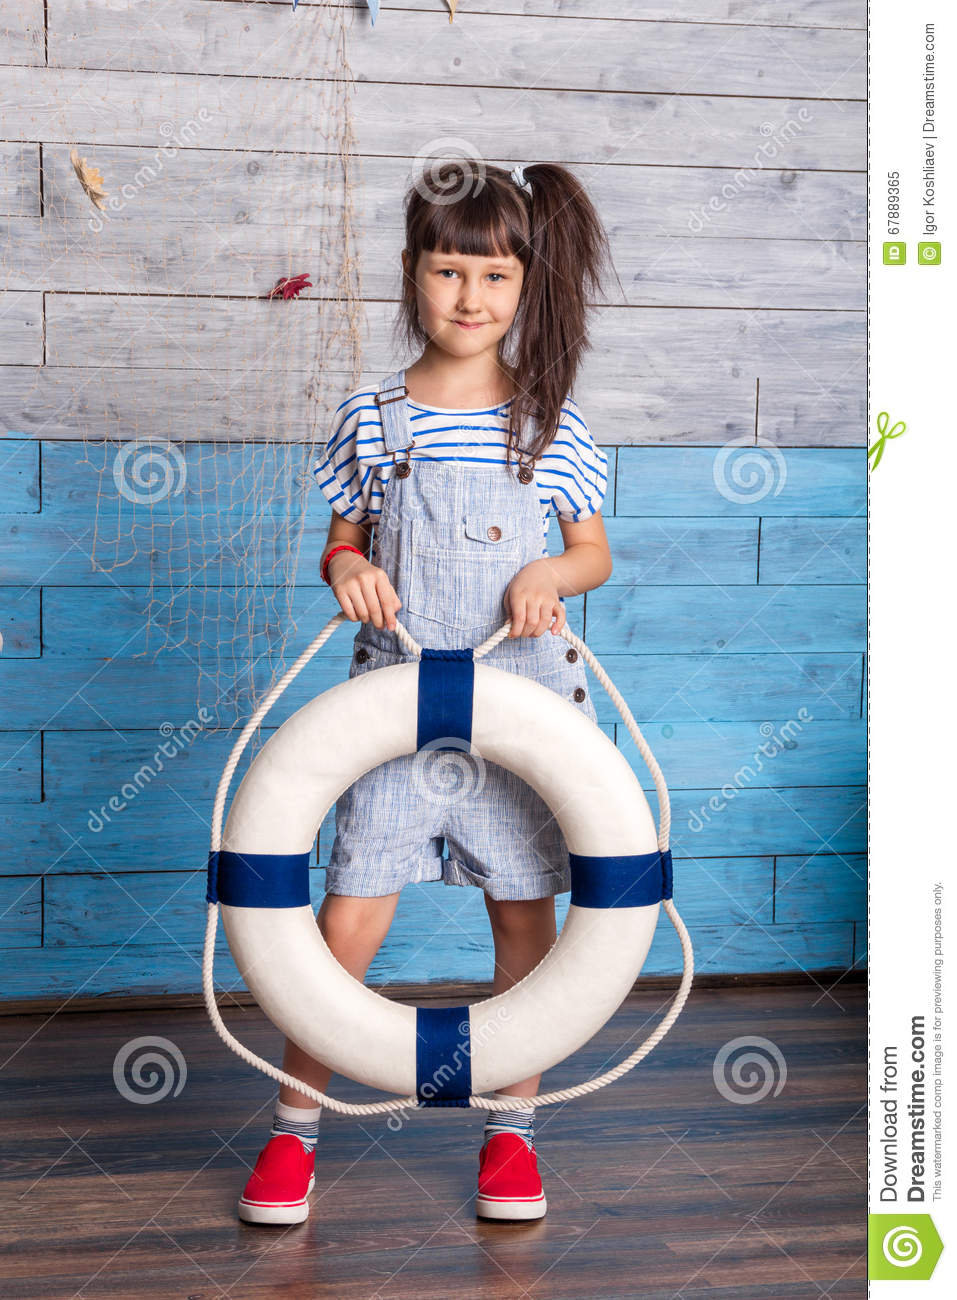 Girl holding a life preserver